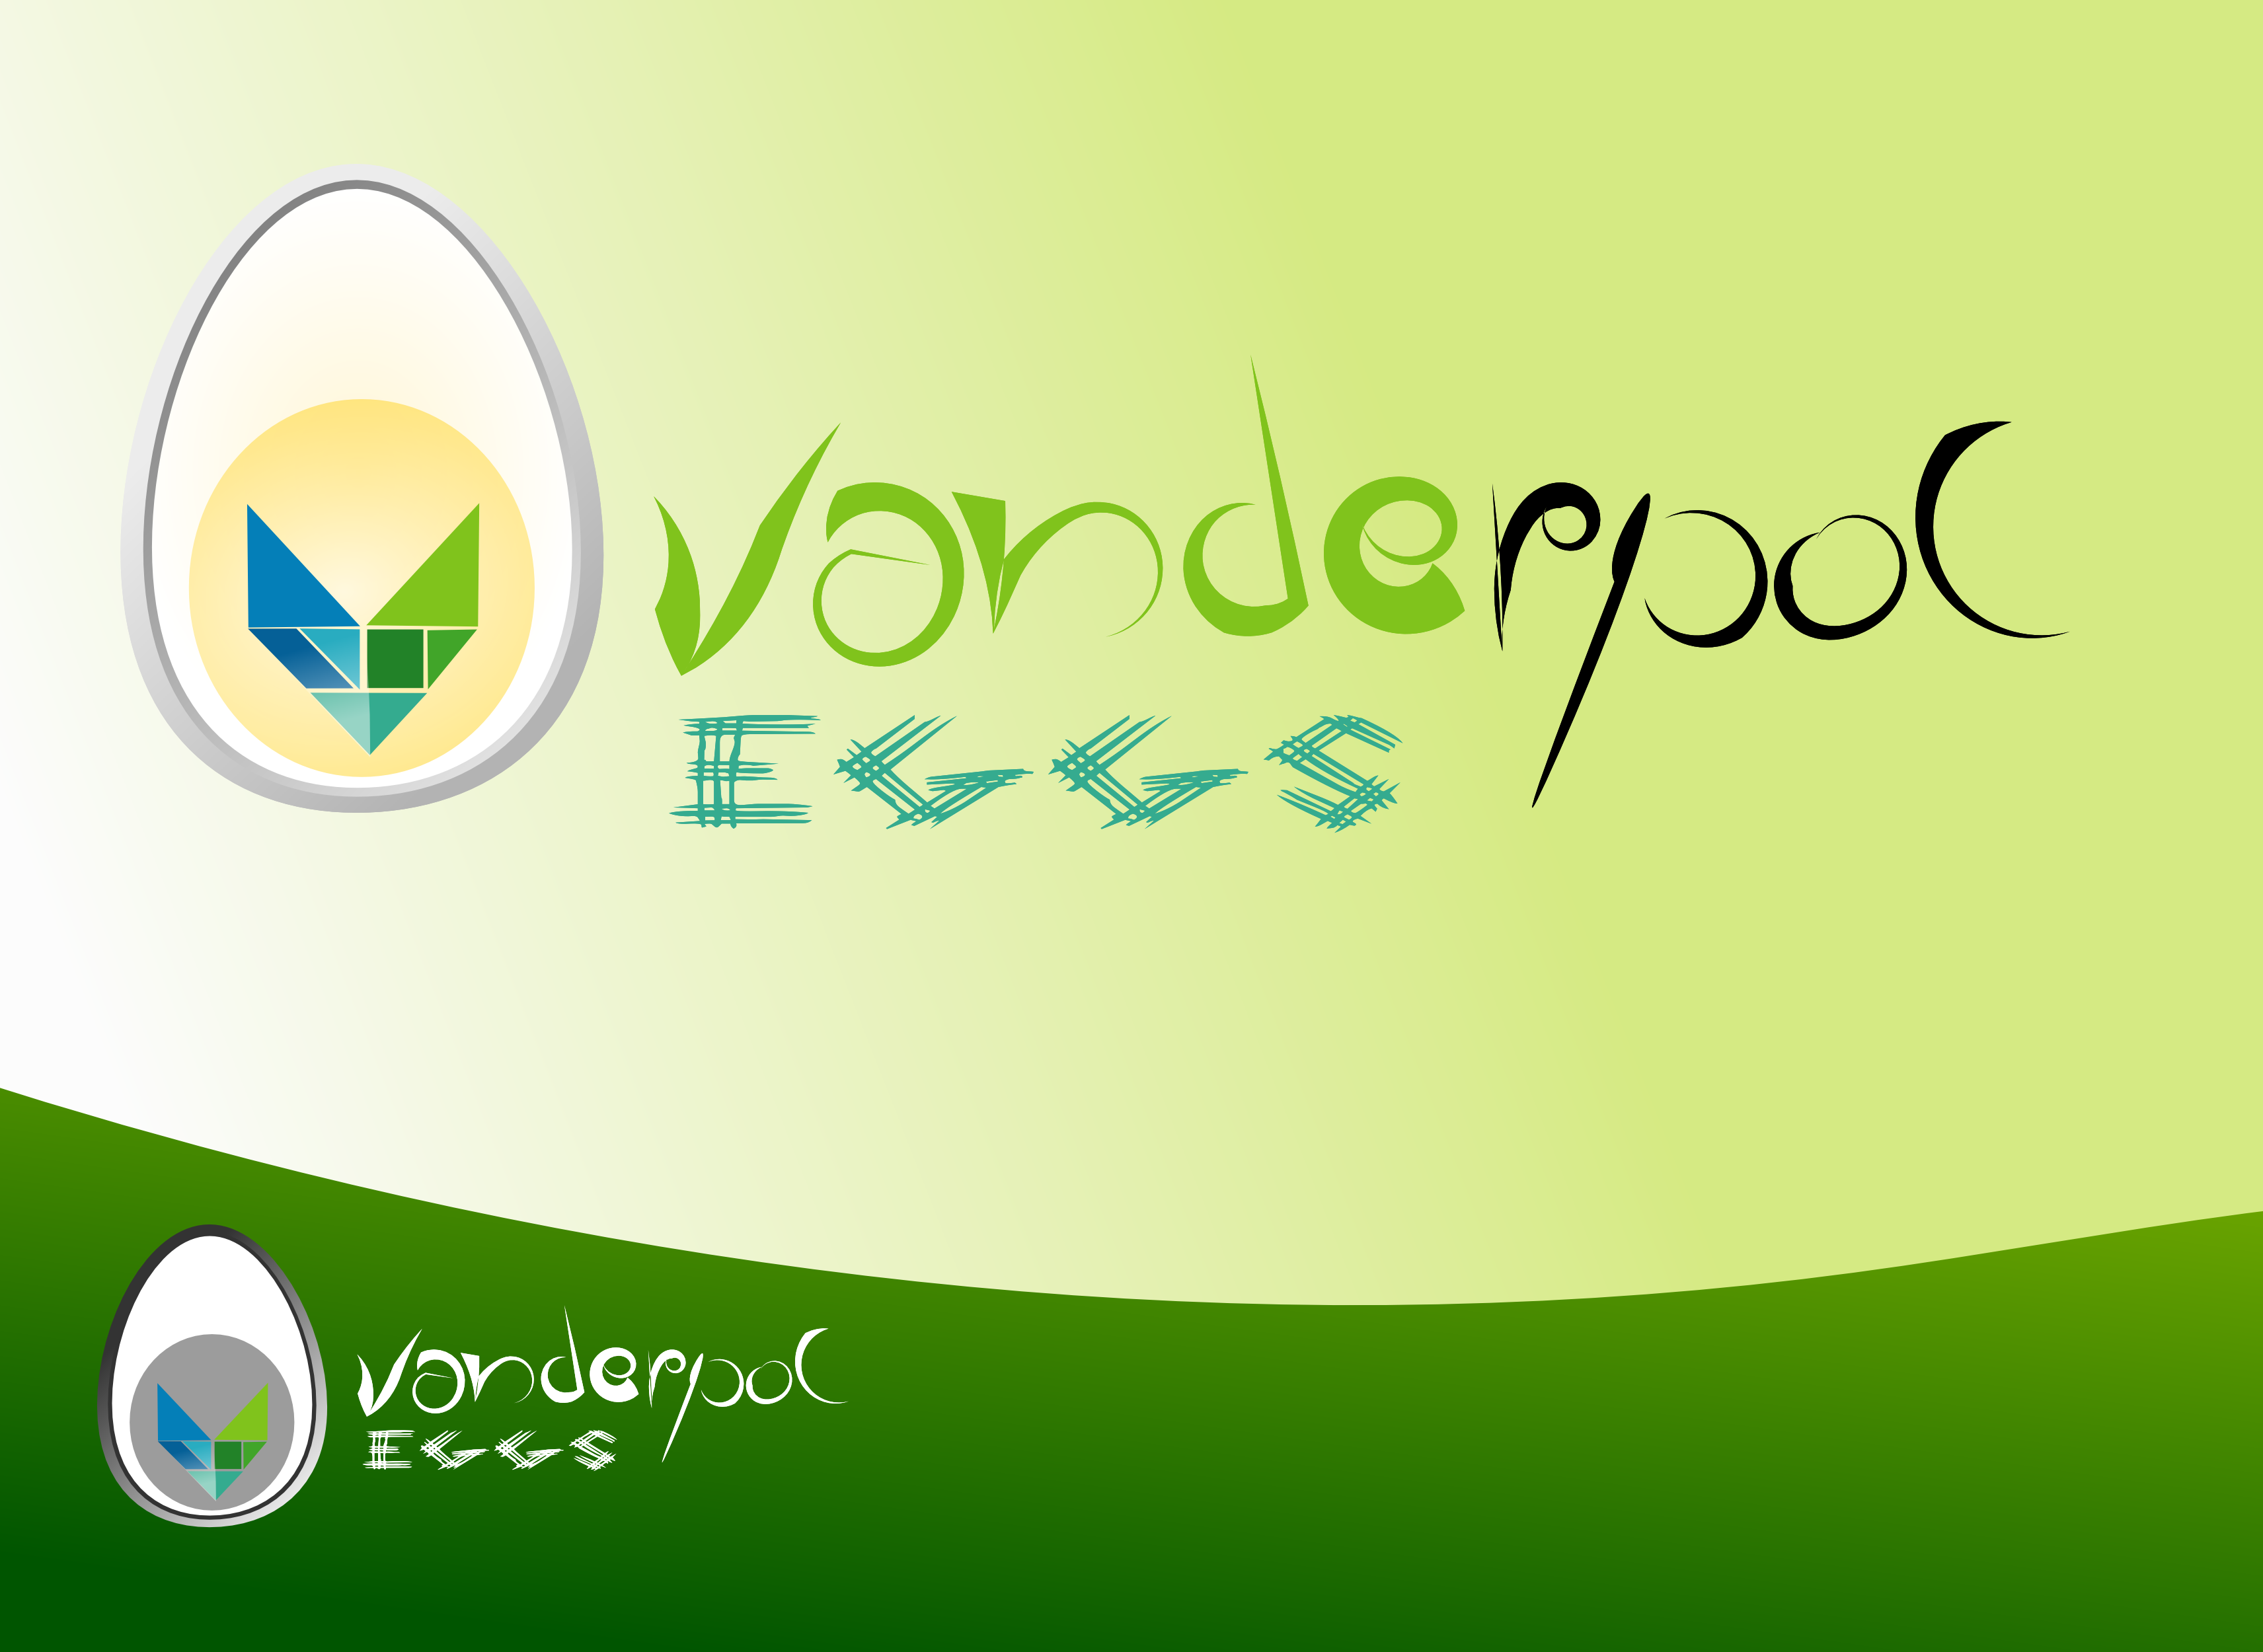 Logo Design by Arindam Khanda - Entry No. 101 in the Logo Design Contest Creative Logo Design for Vanderpol Food Group.